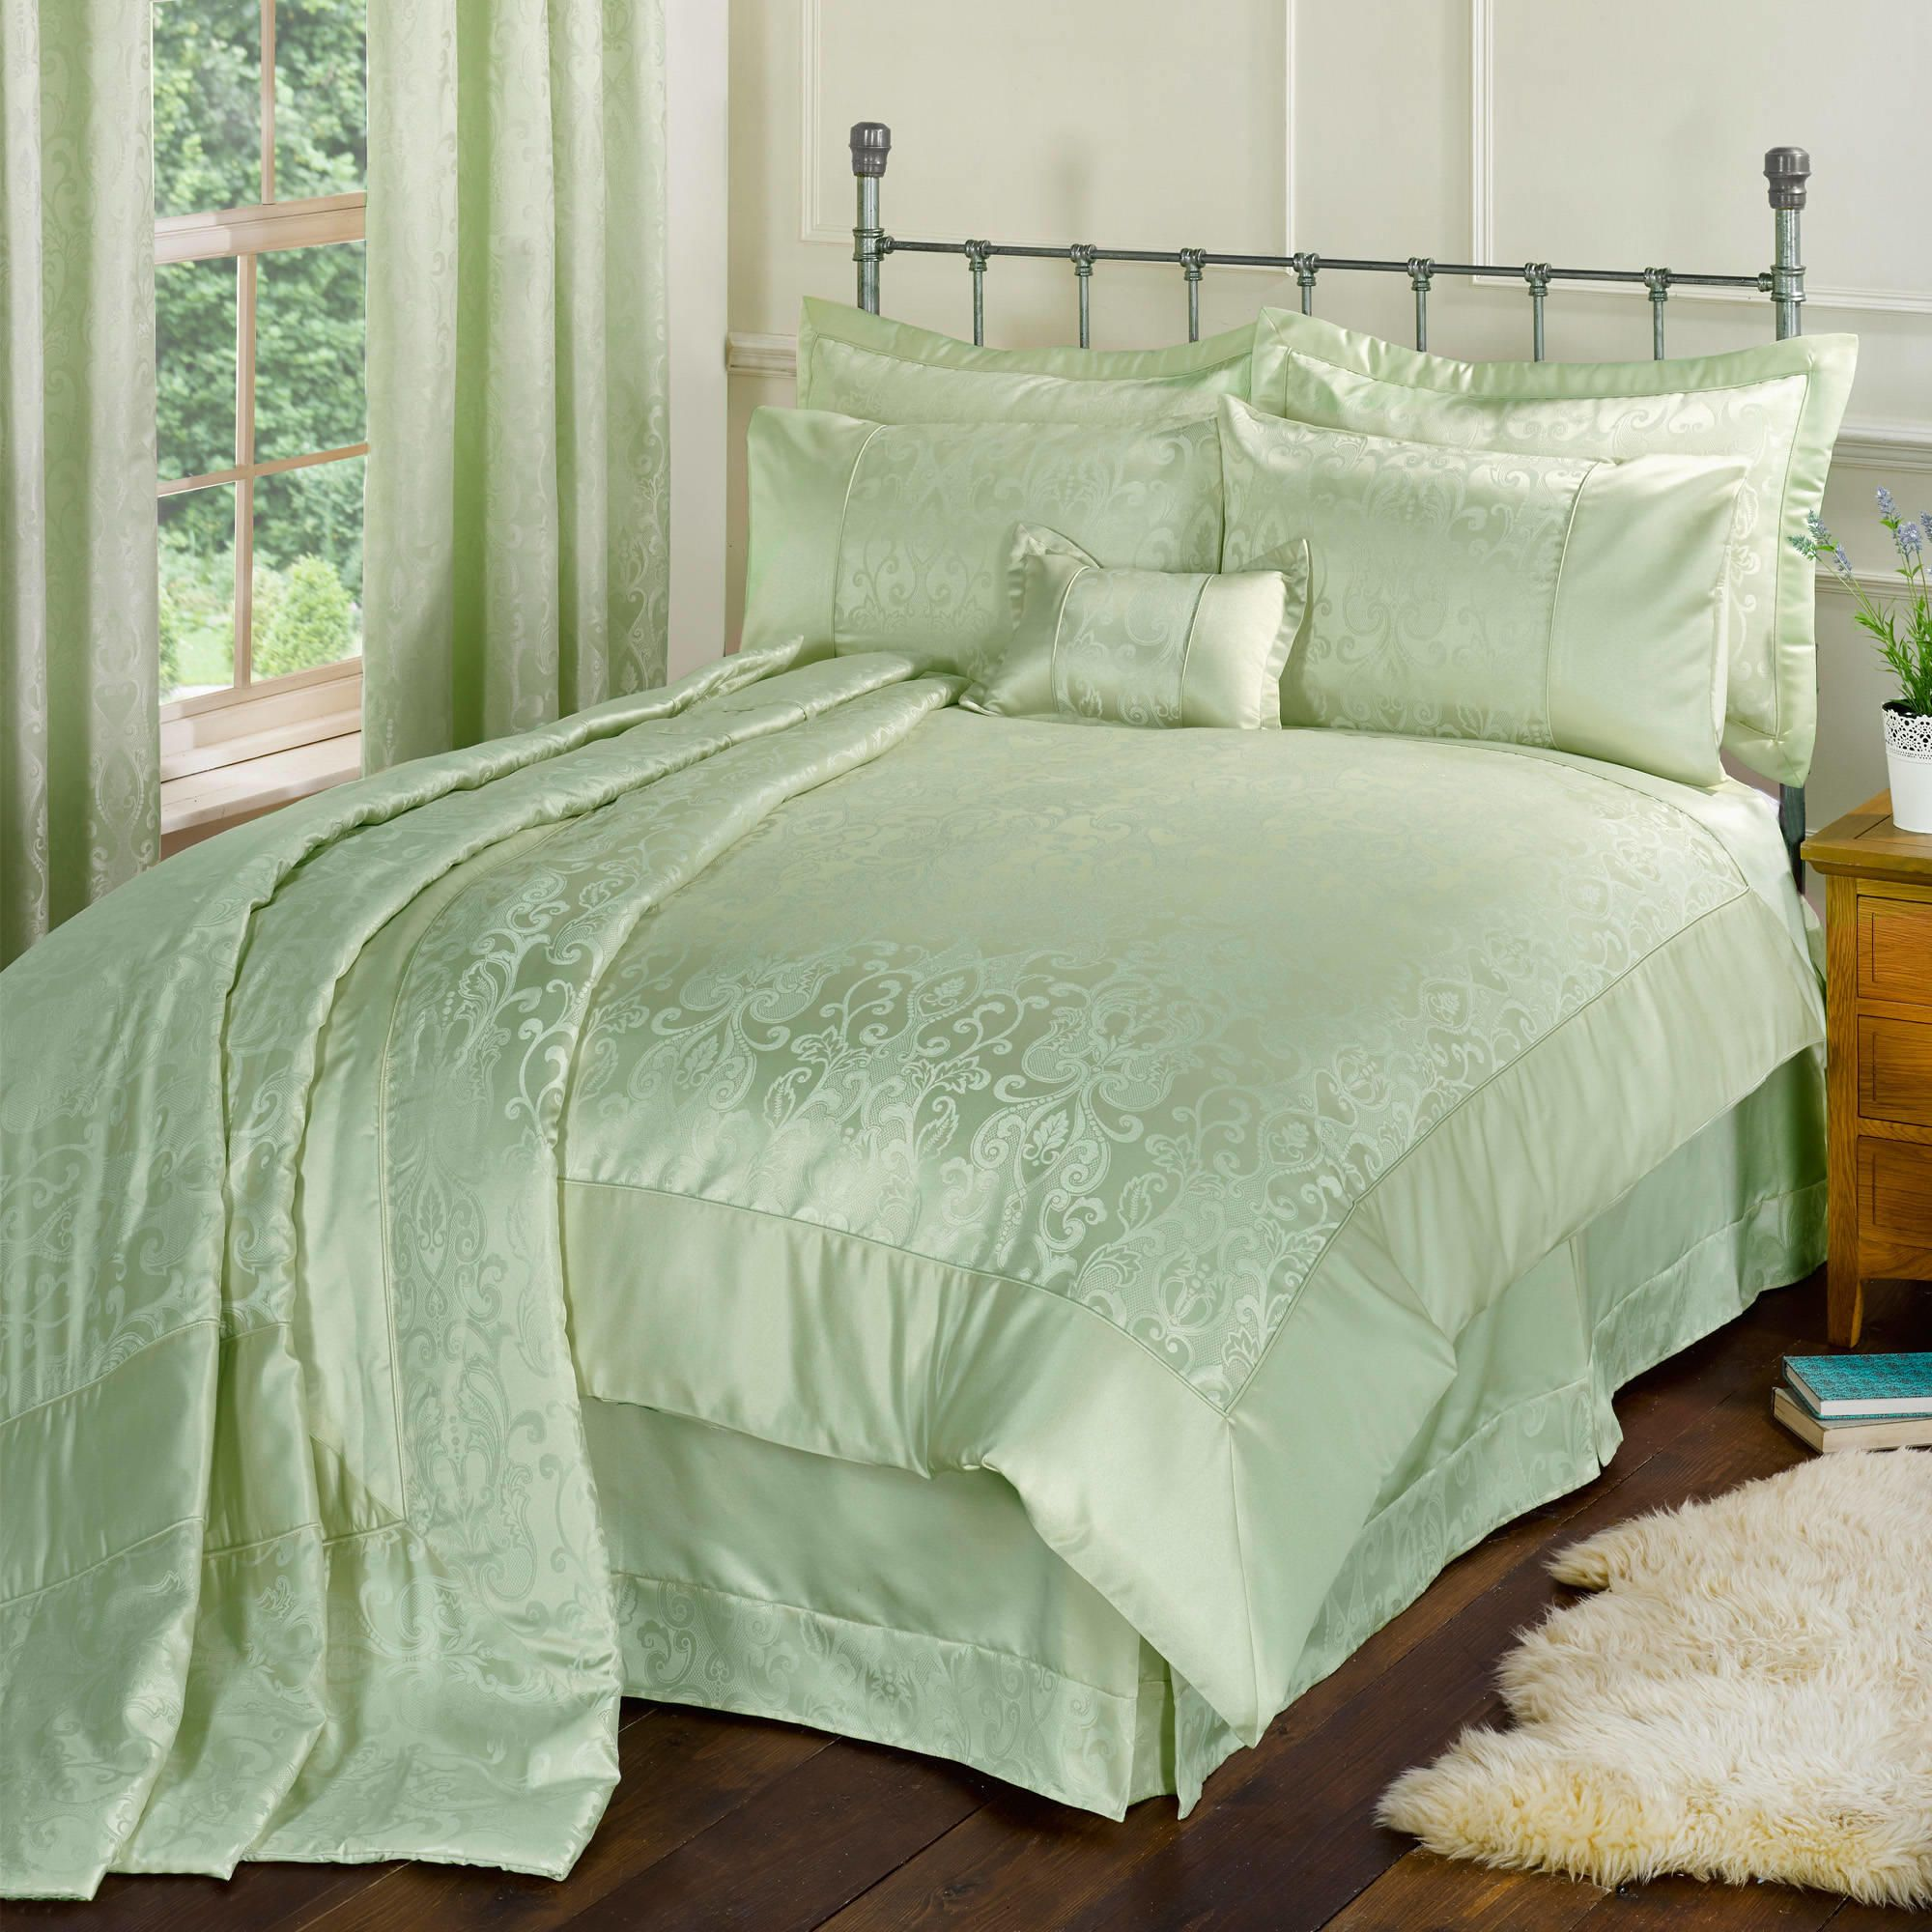 Duvet and comforter covers should be the centerpiece in any bedroom. Choose one that reflects your unique personality and style. Think about how much time .